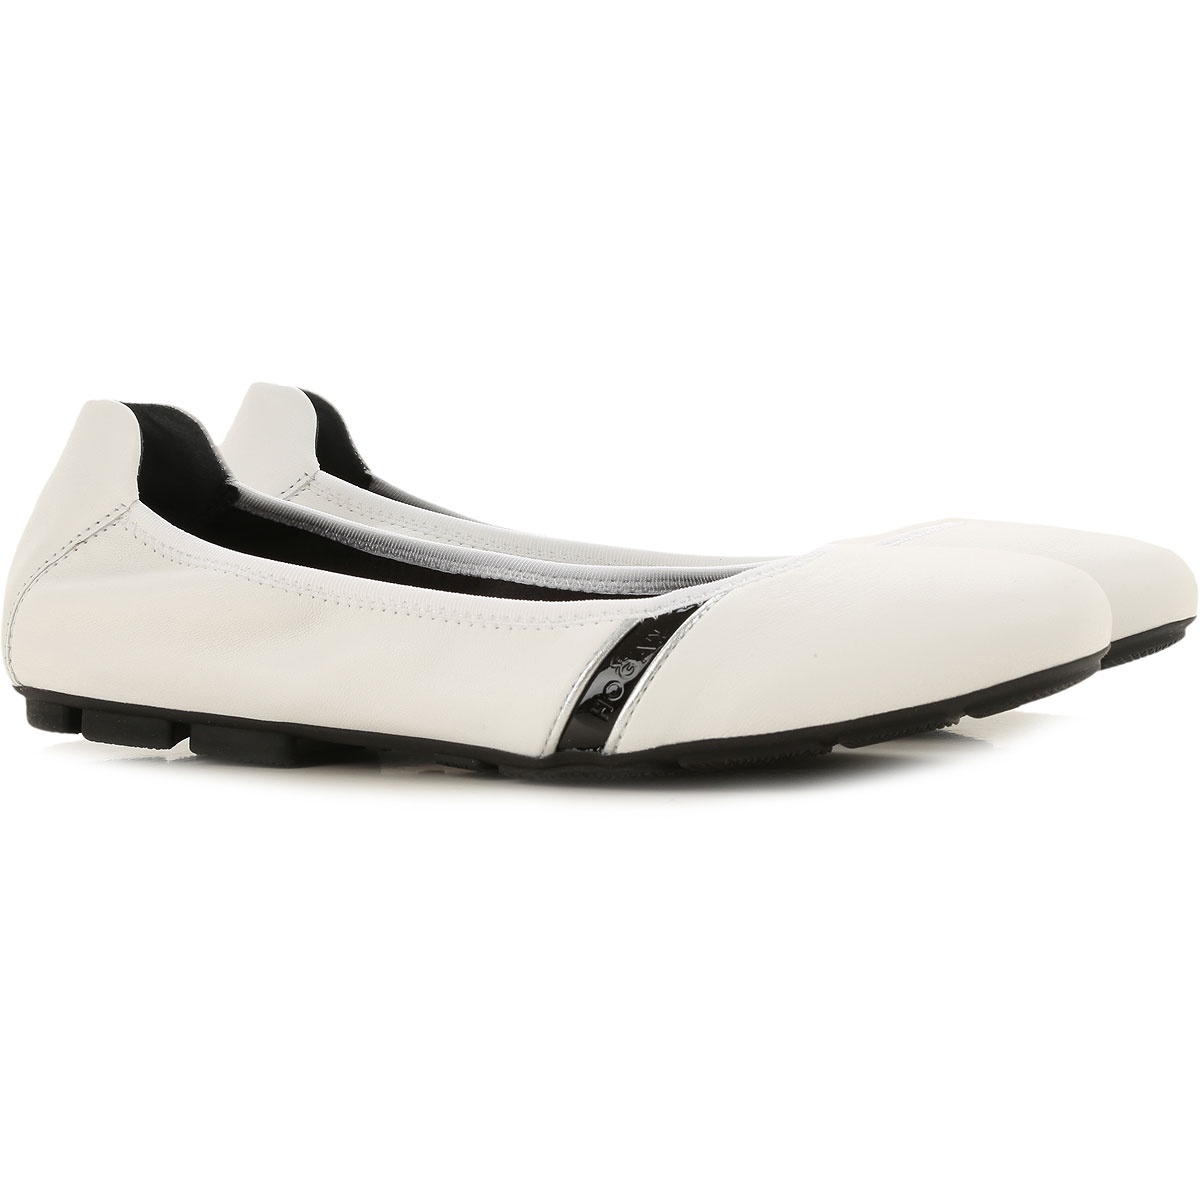 Hogan Ballet Flats Ballerina Shoes for Women On Sale, White, Leather, 2019, 10 5 5.5 6 6.5 7 8 8.5 9 9.5